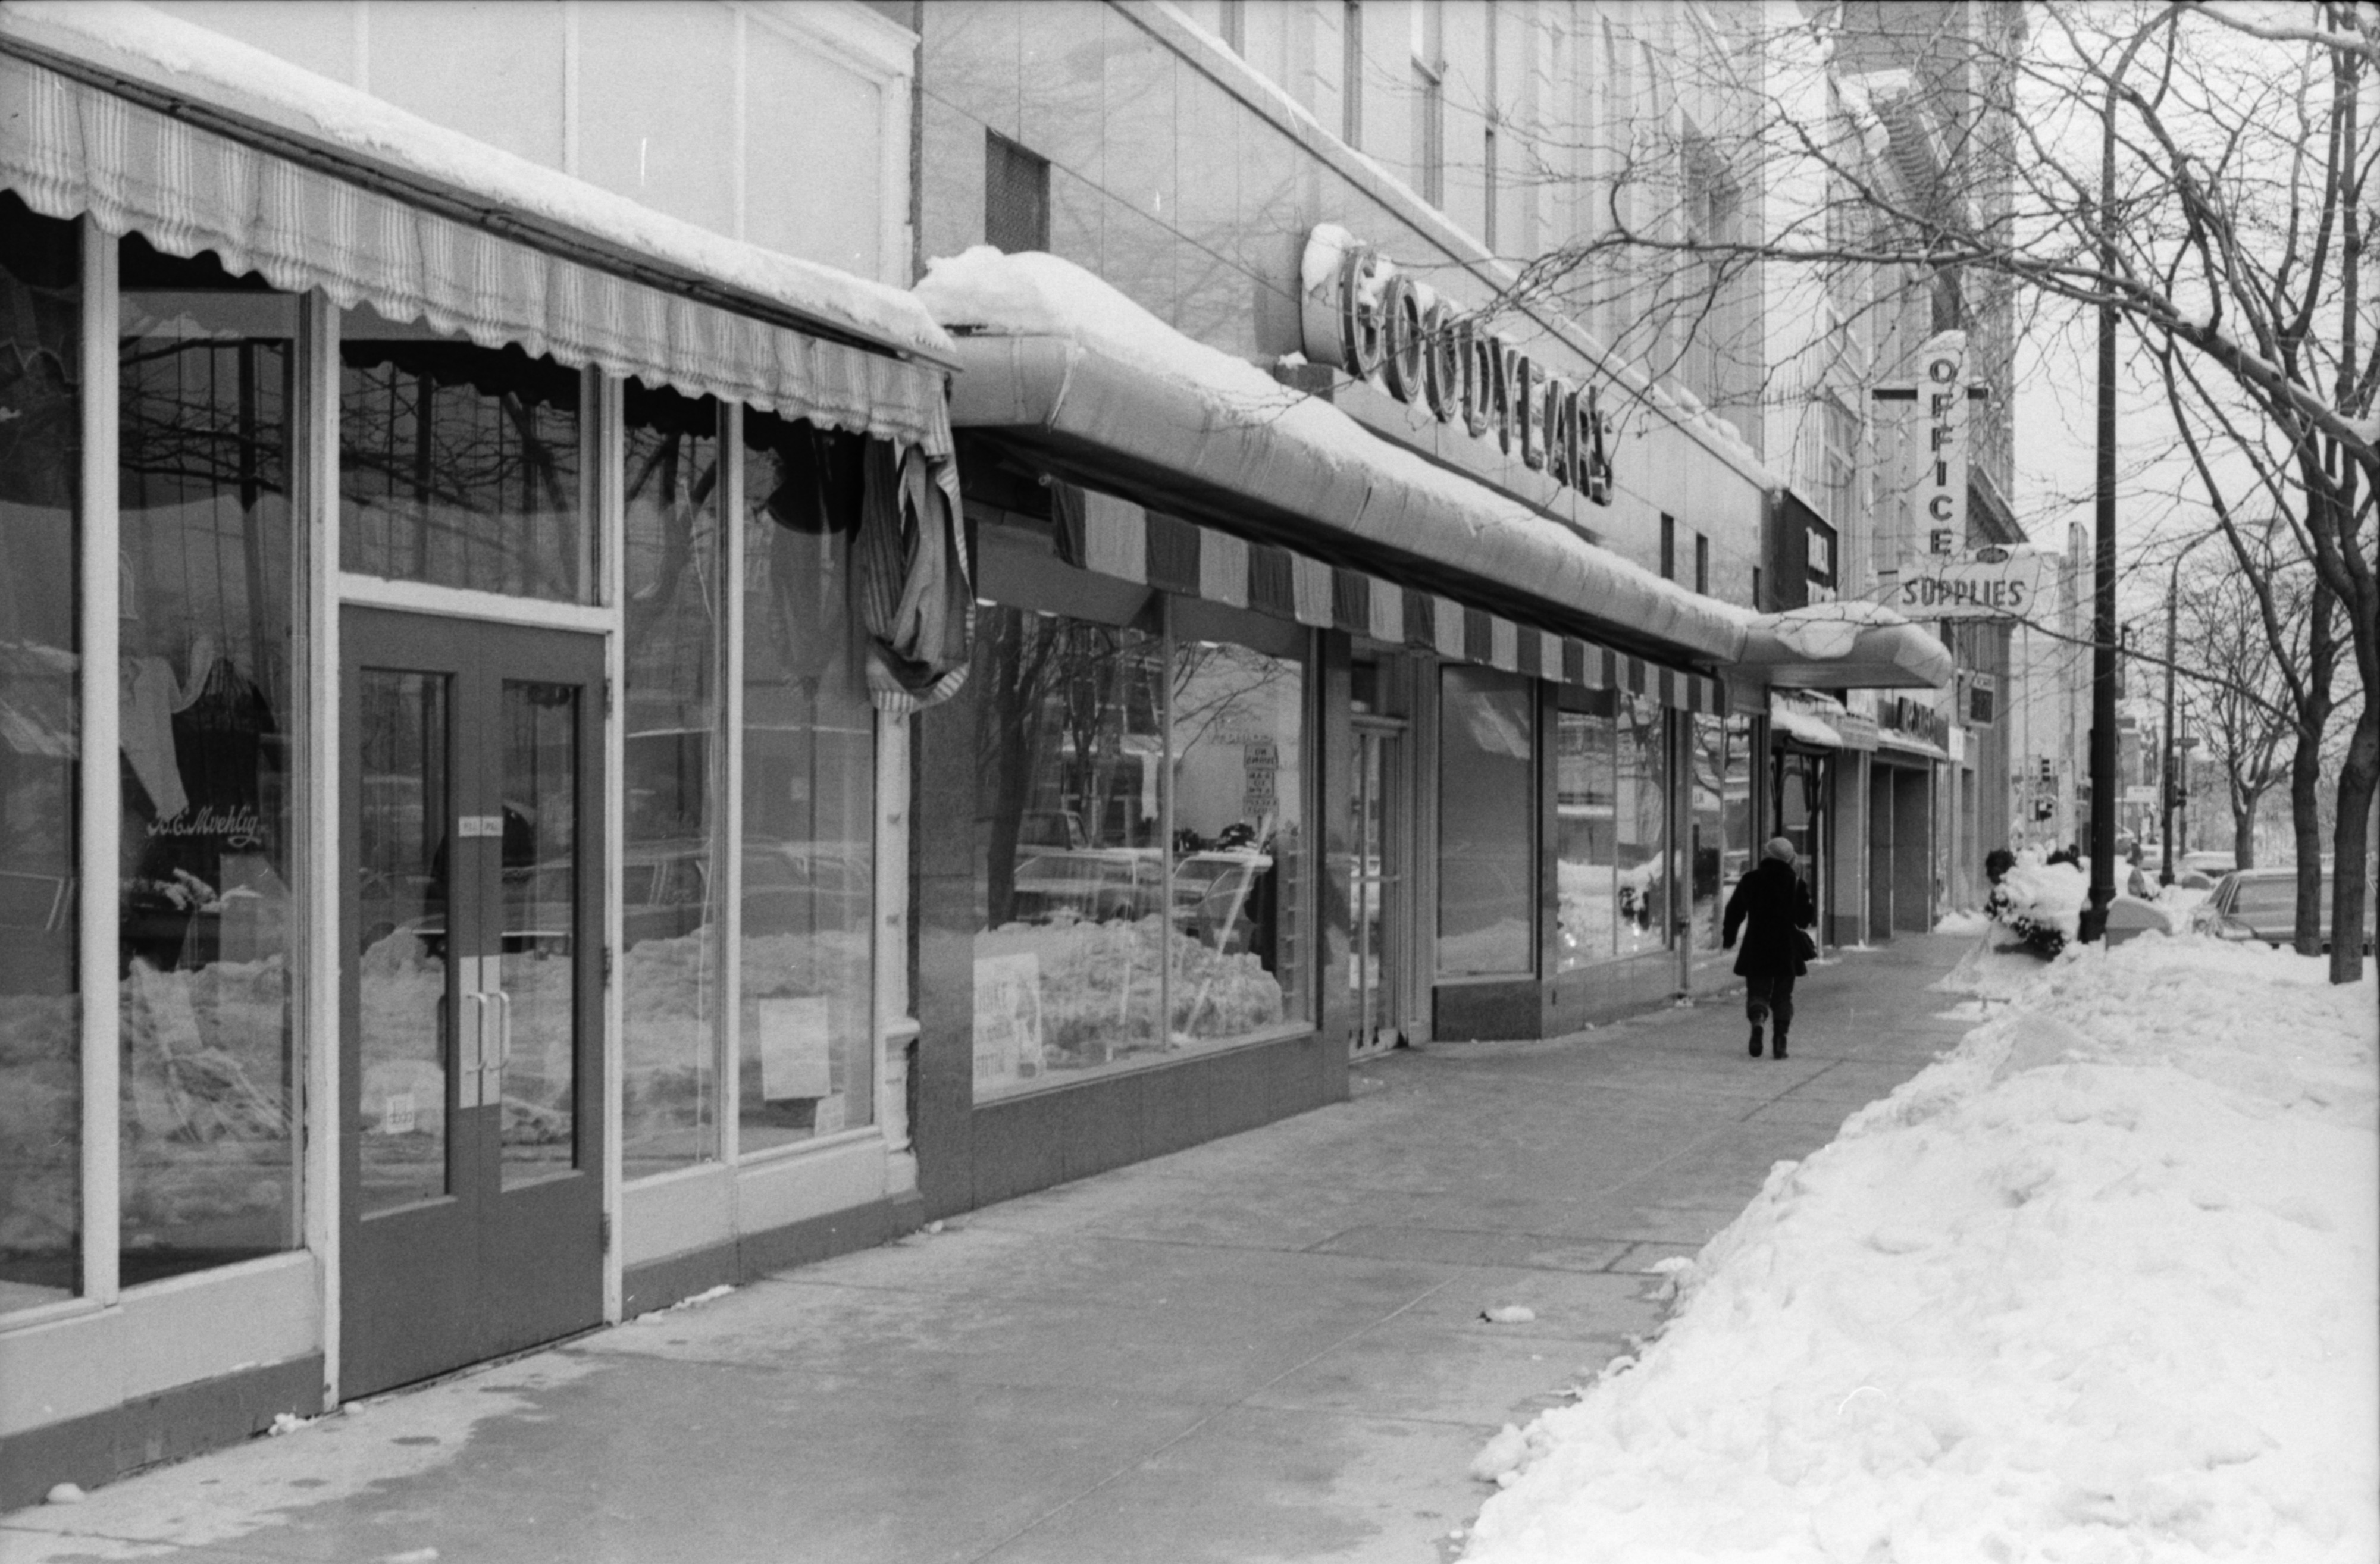 Clear Sidewalks In Front of Goodyear's After Blizzard, February 1978 image